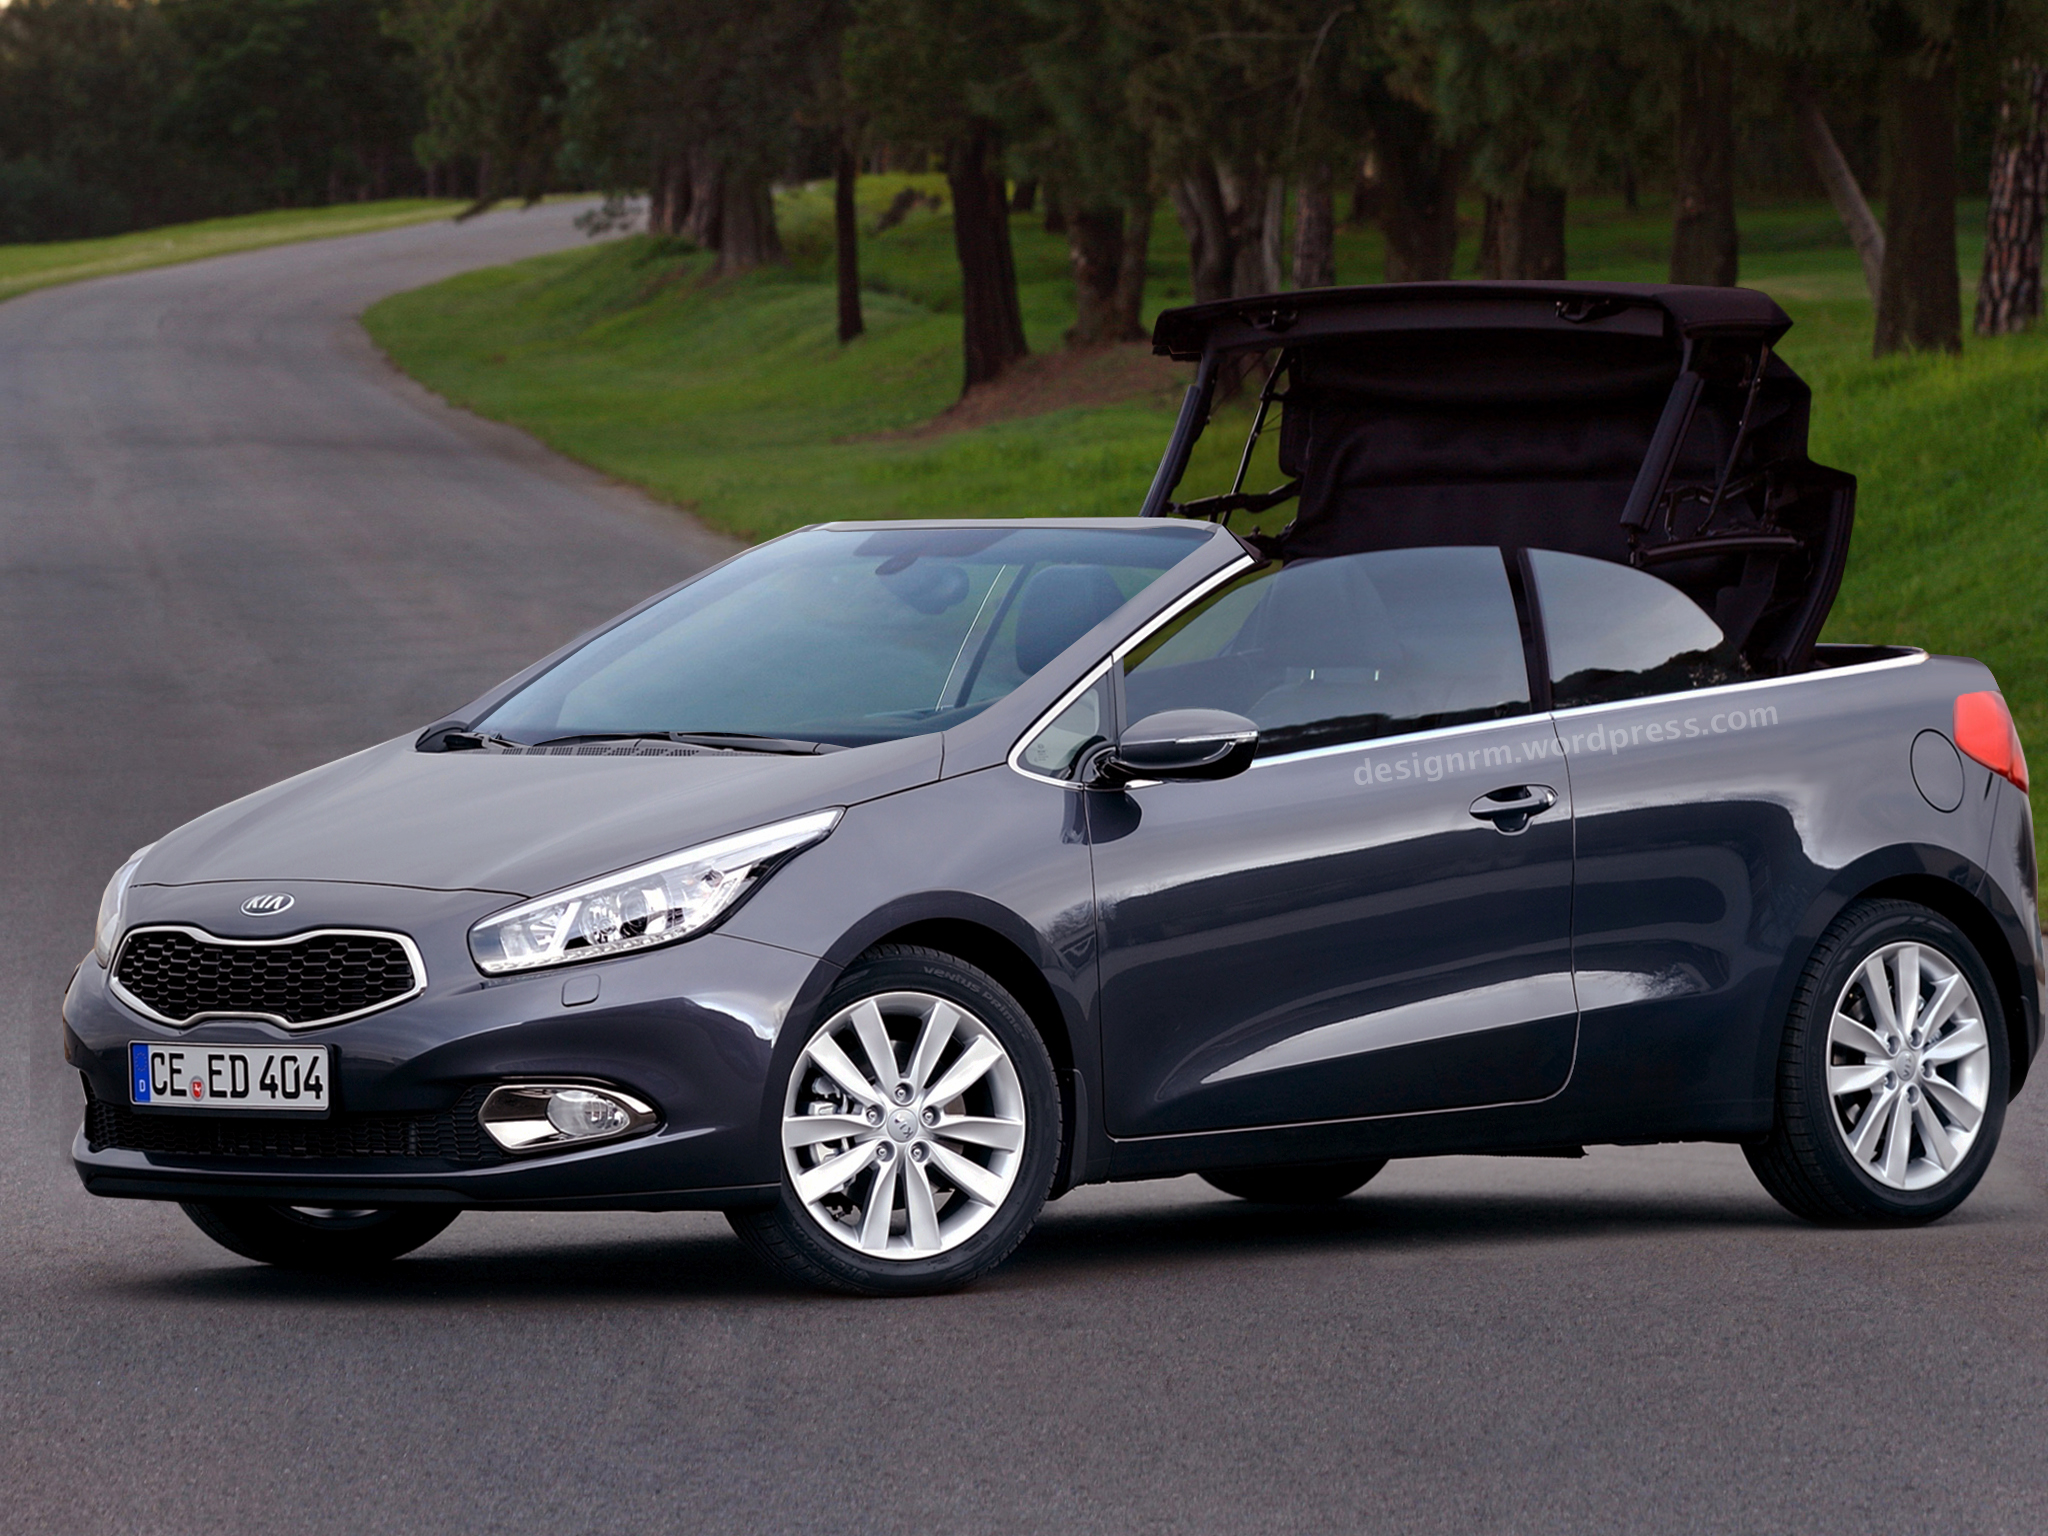 2016 kia ceed ii sw pictures information and specs auto. Black Bedroom Furniture Sets. Home Design Ideas